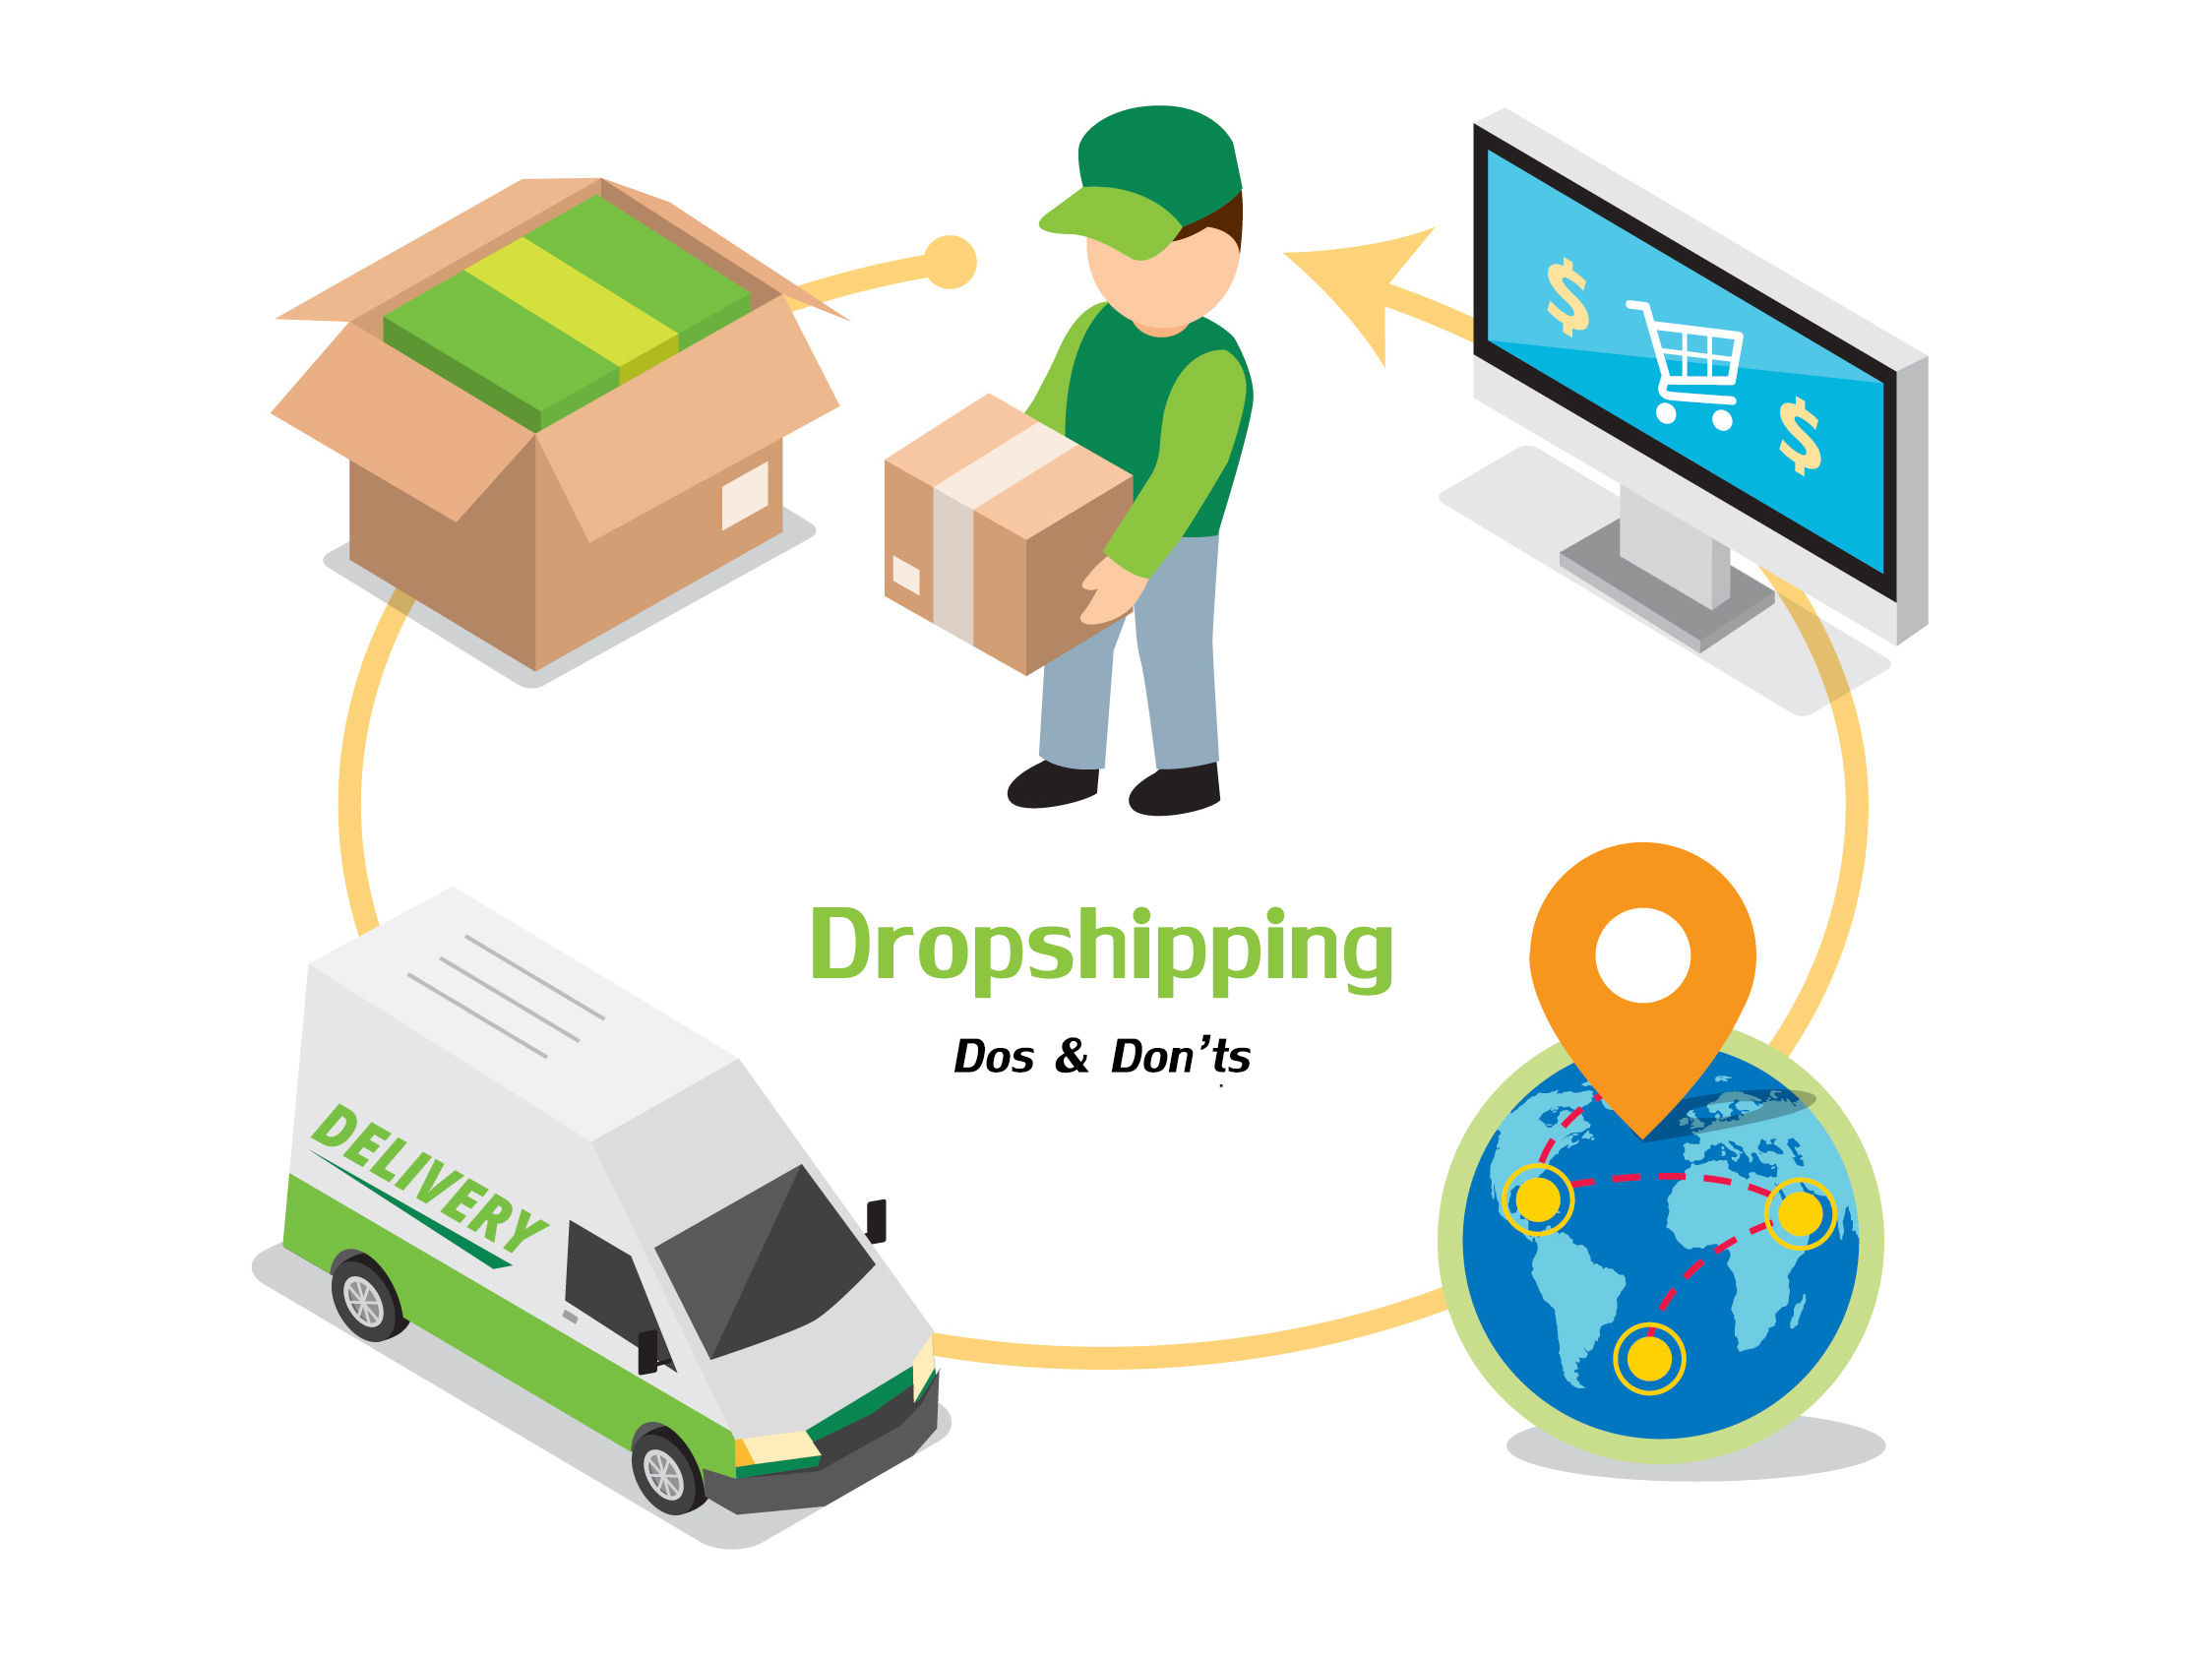 aliexpress dropship tips